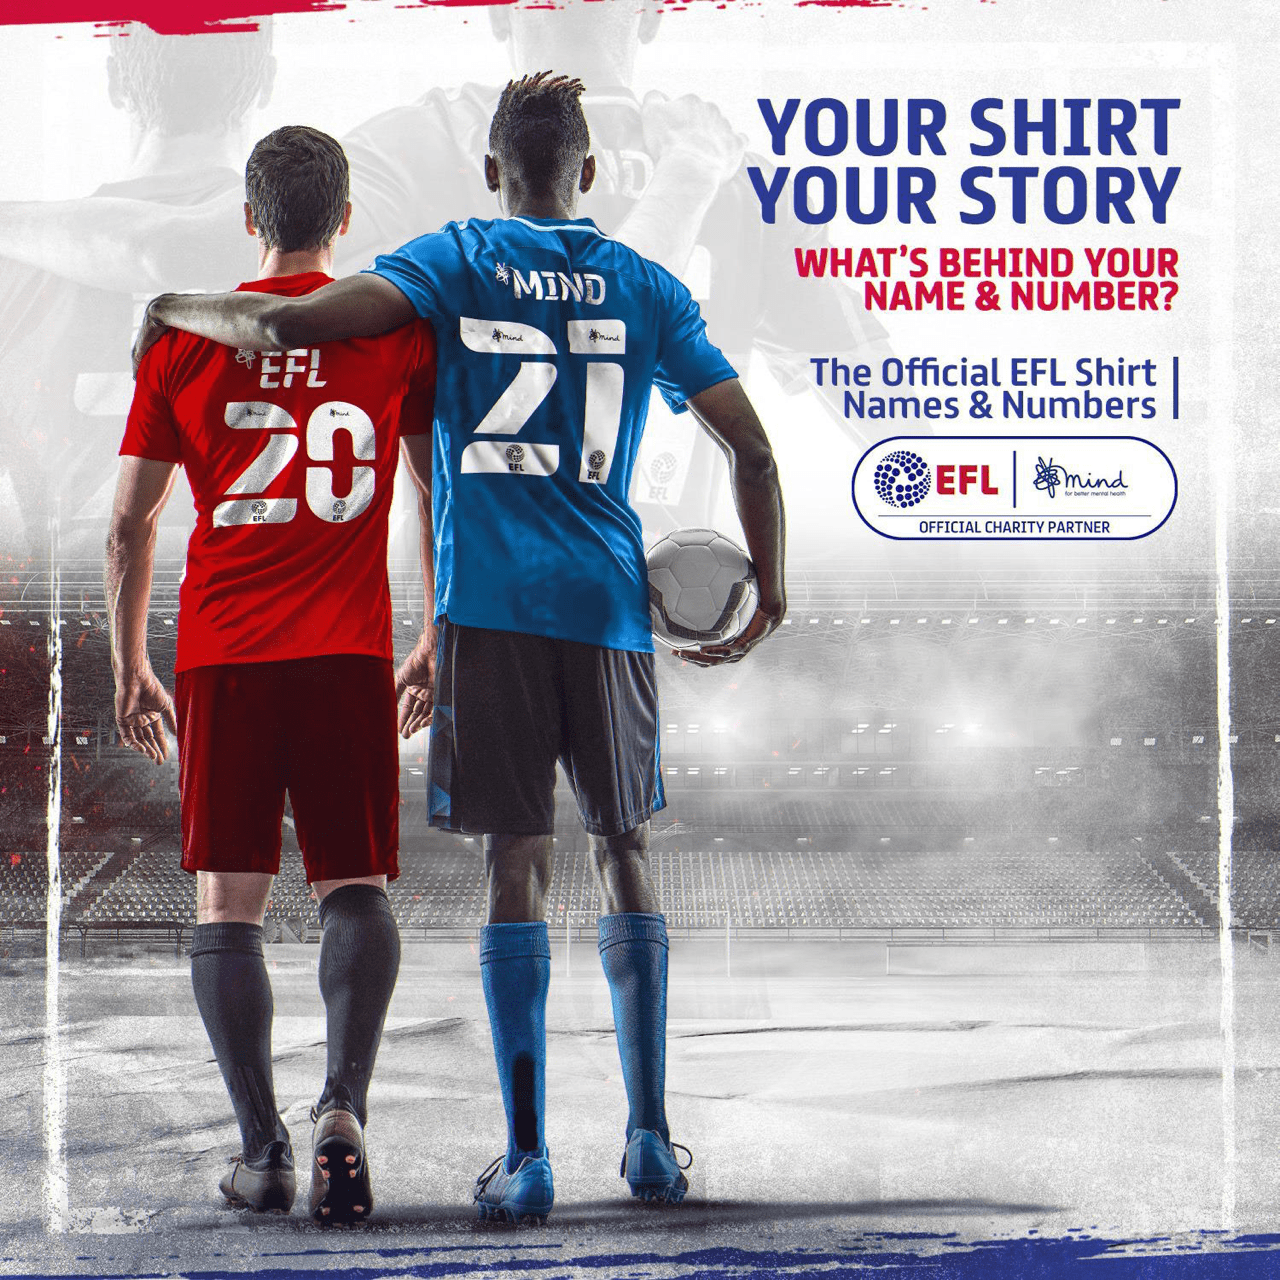 EFL and MIND Celebrate Two Seasons Of 'on Your Side' Partnership